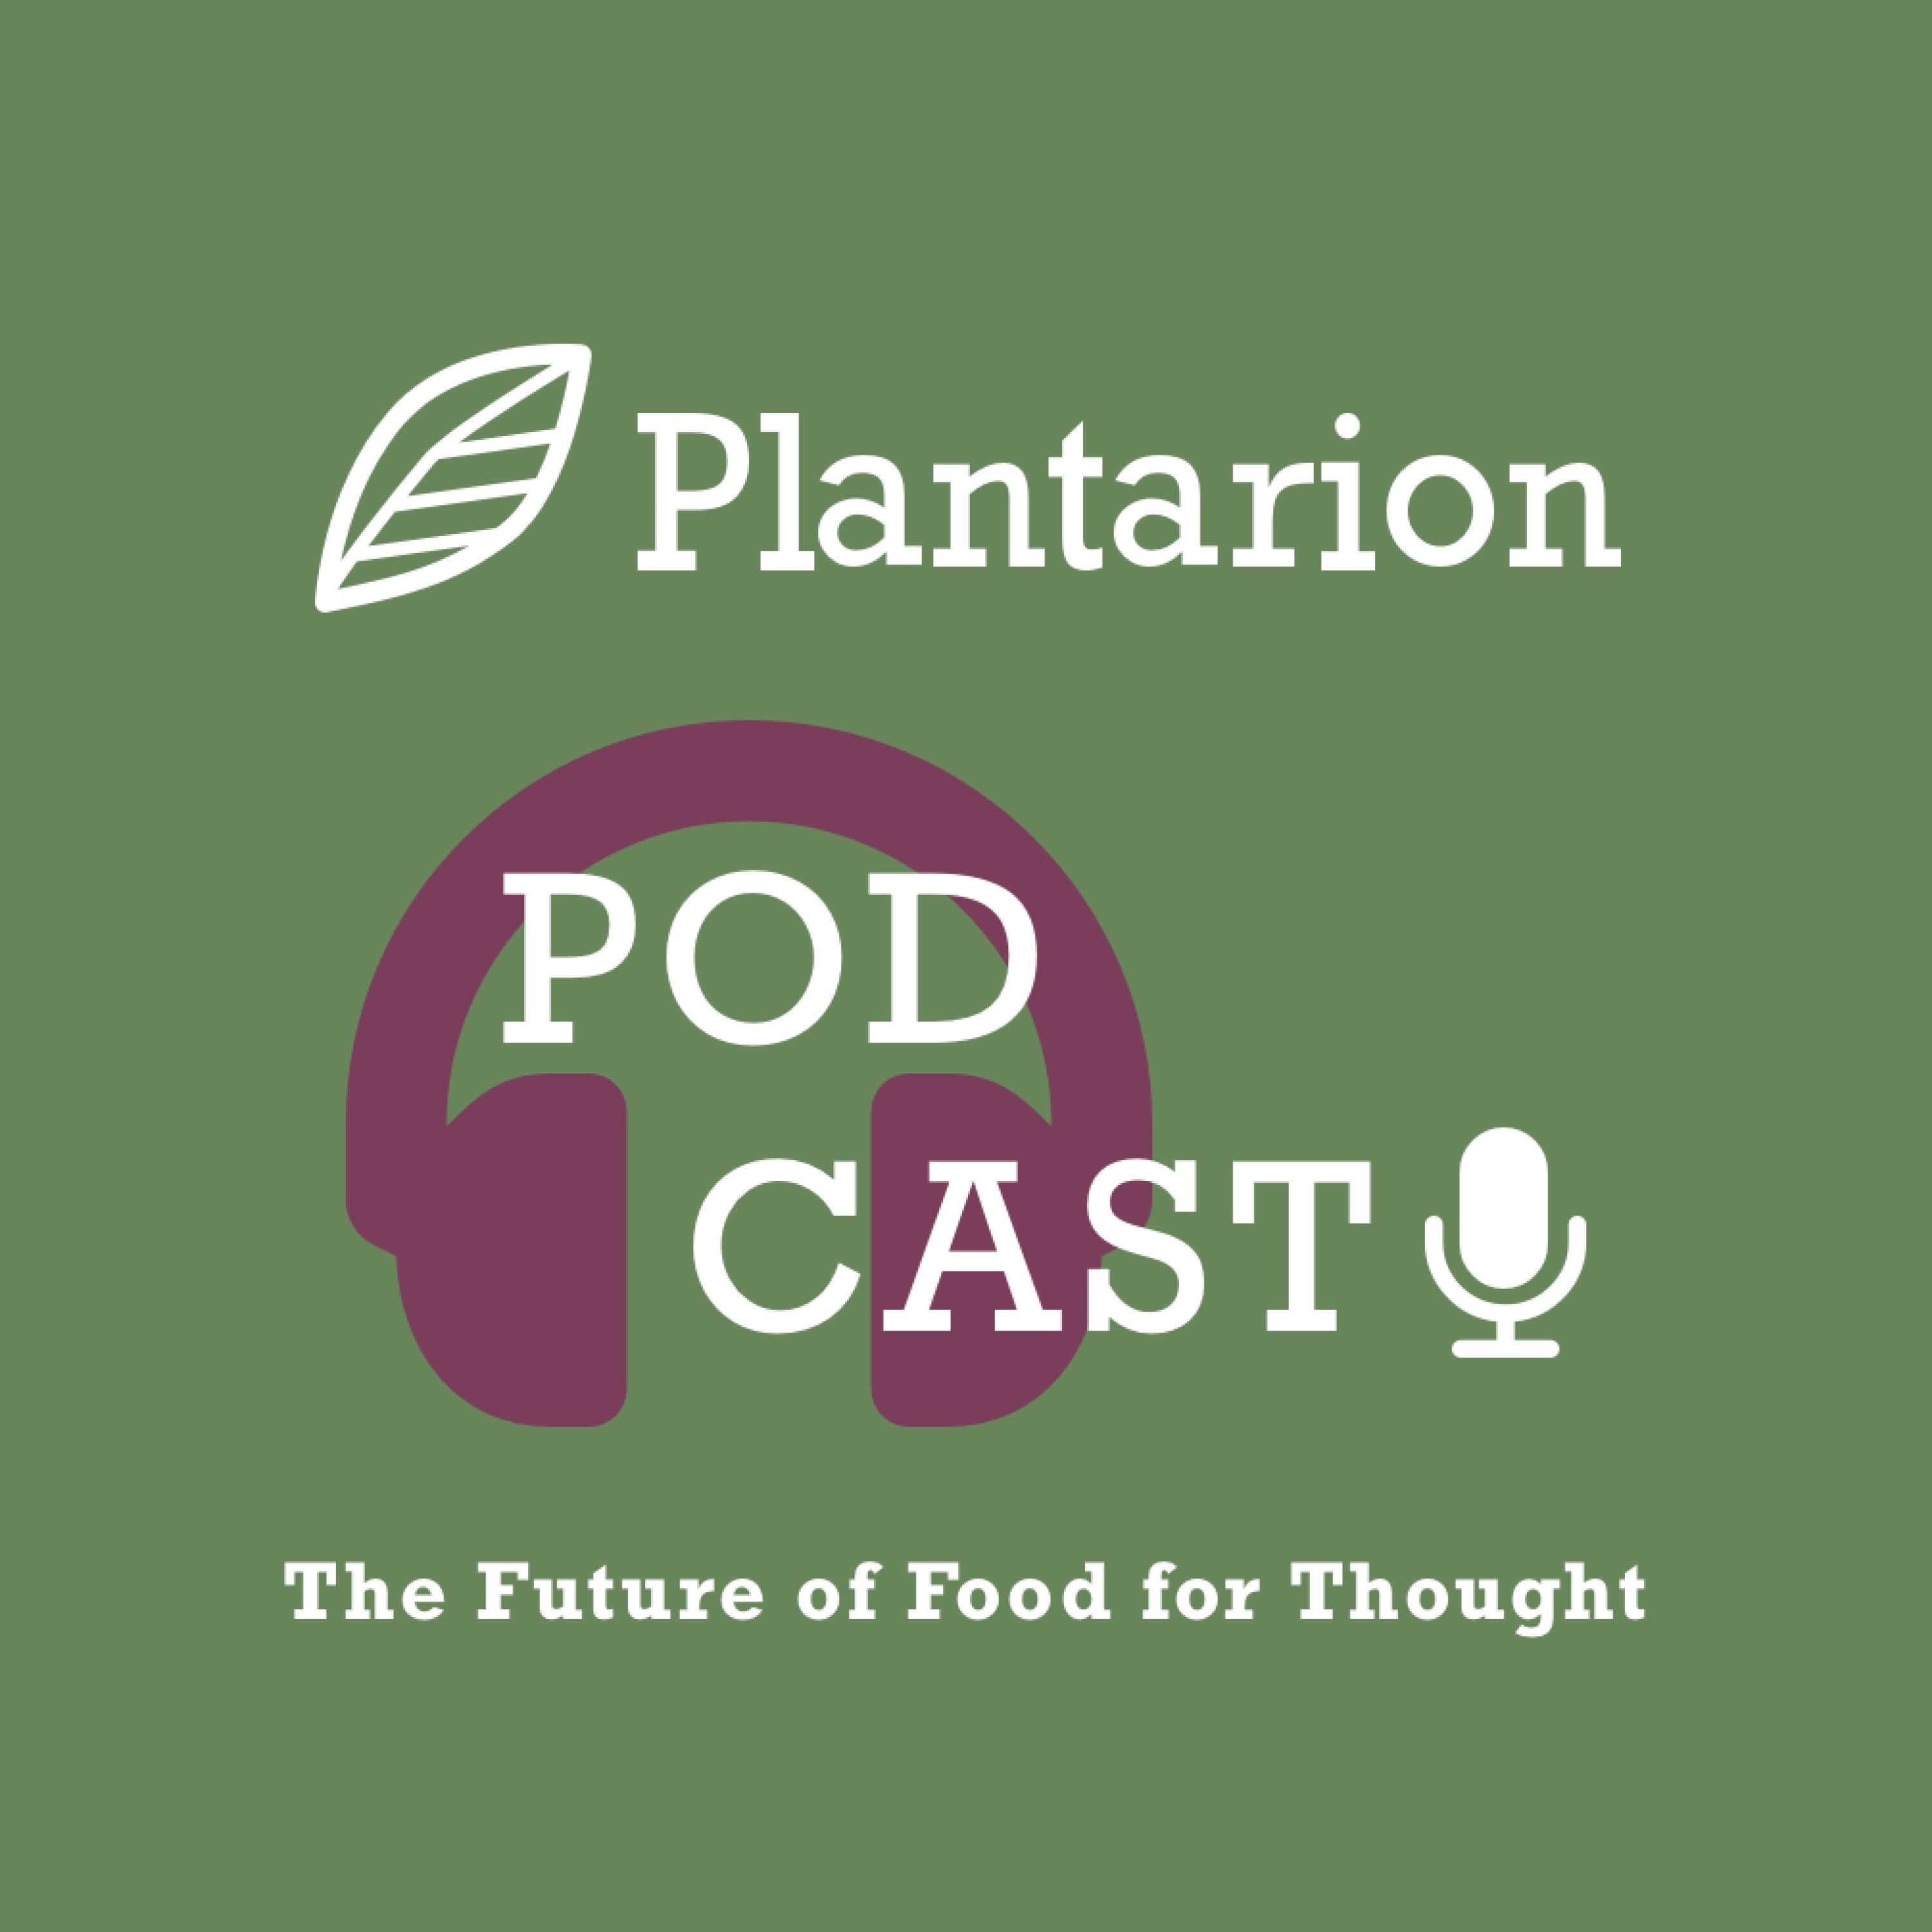 The Plantarion Podcast